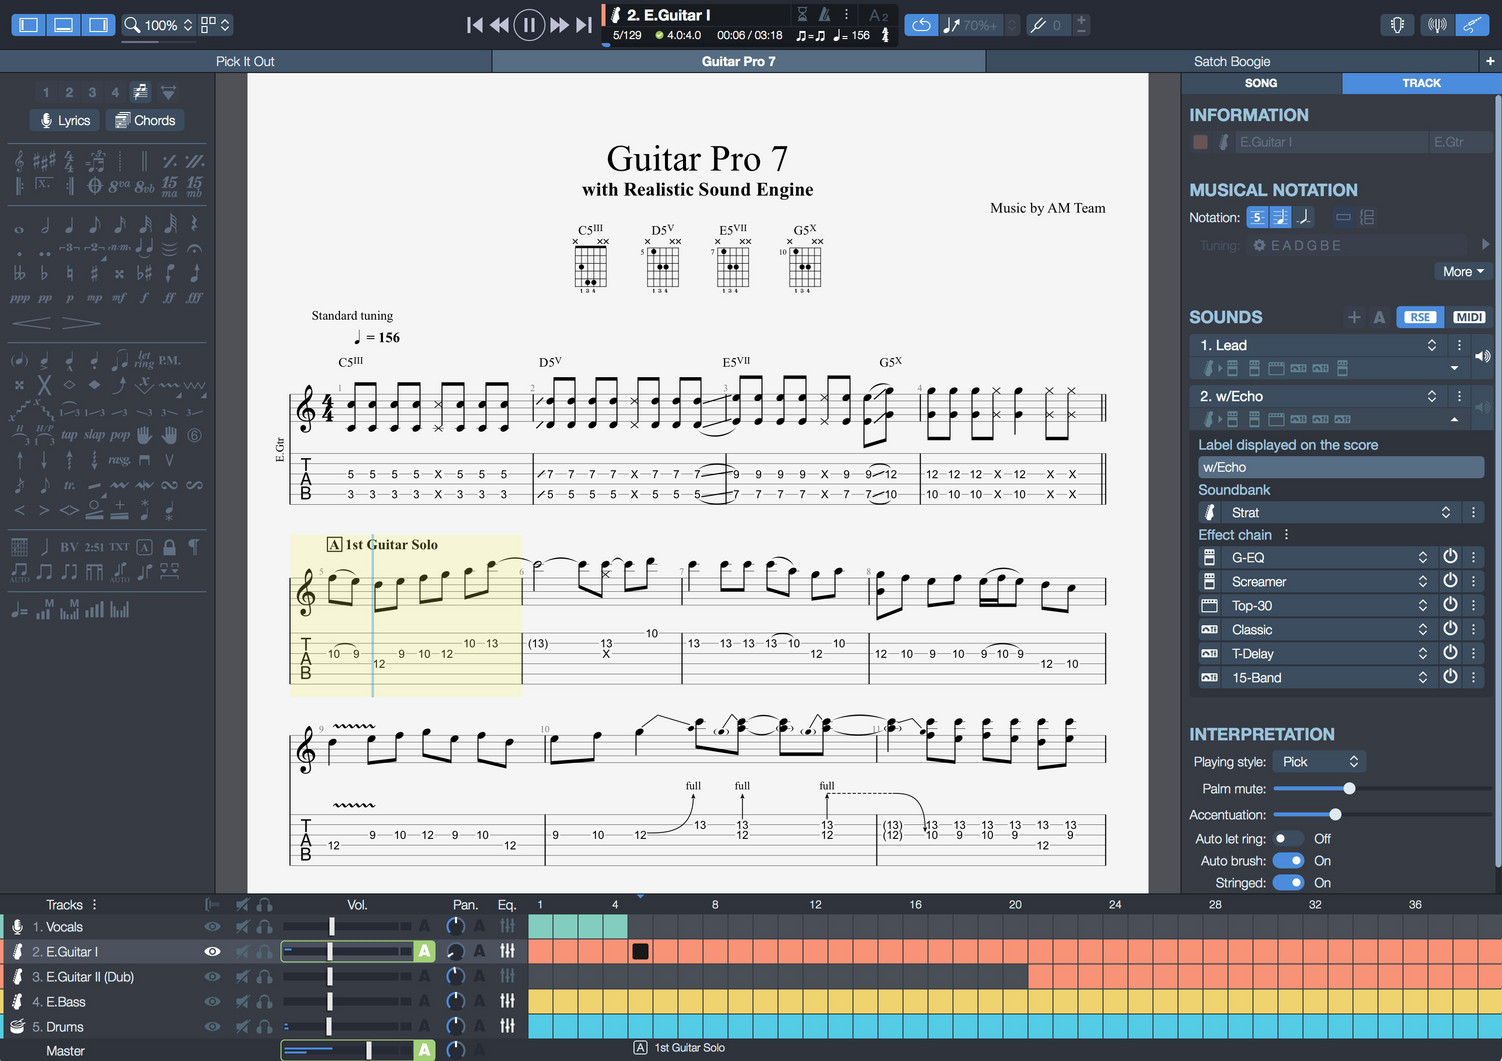 Guitar Pro Sheet Music Editor Software For Guitar Bass Keyboards